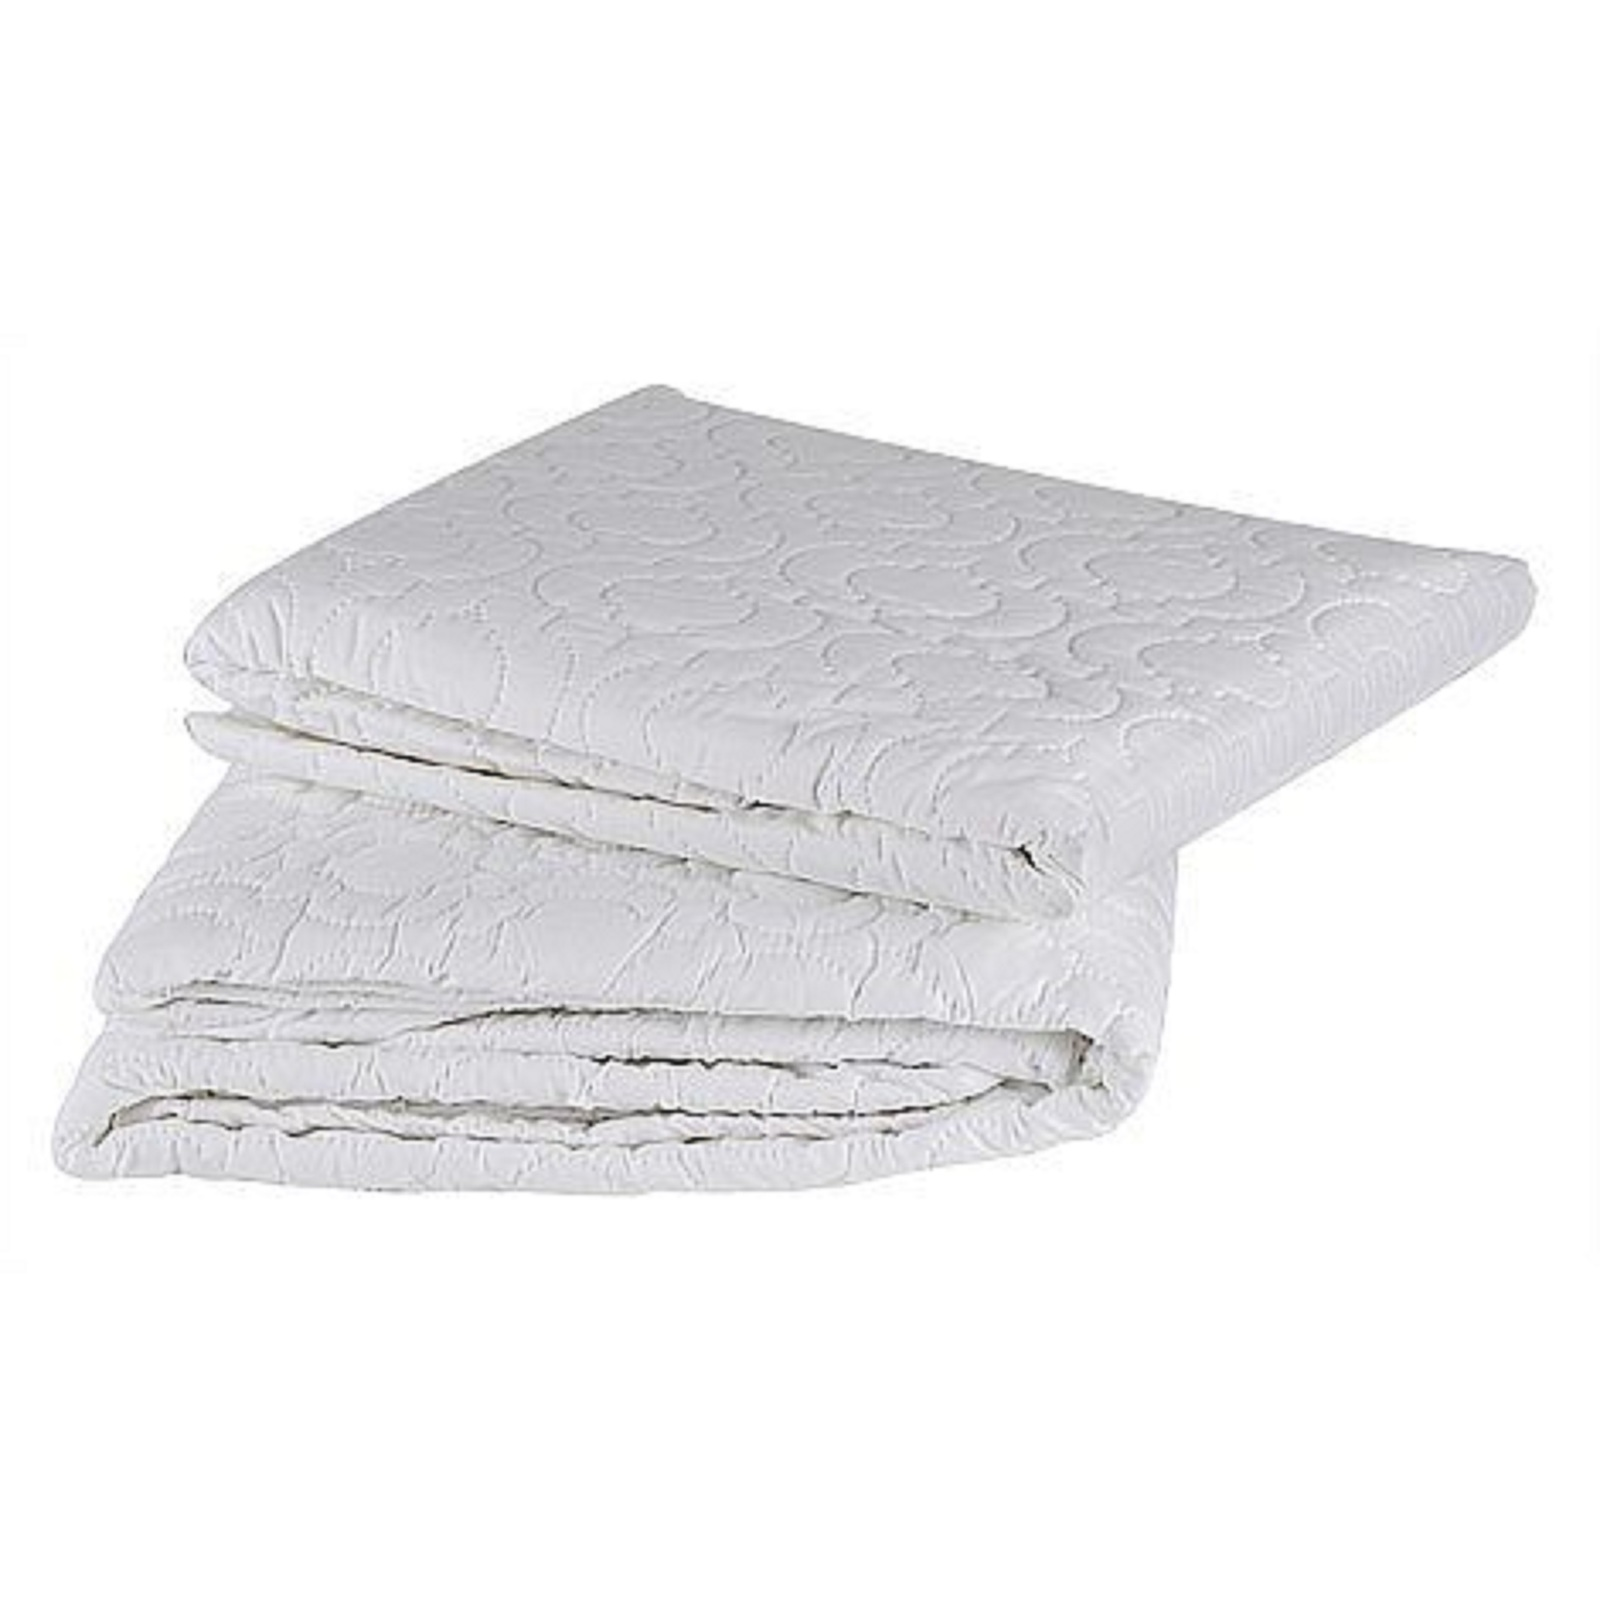 NEW BROLLY SHEETS WATERPROOF QUILTED MATTRESS PROTECTORS KING SINGLE WASHABLE